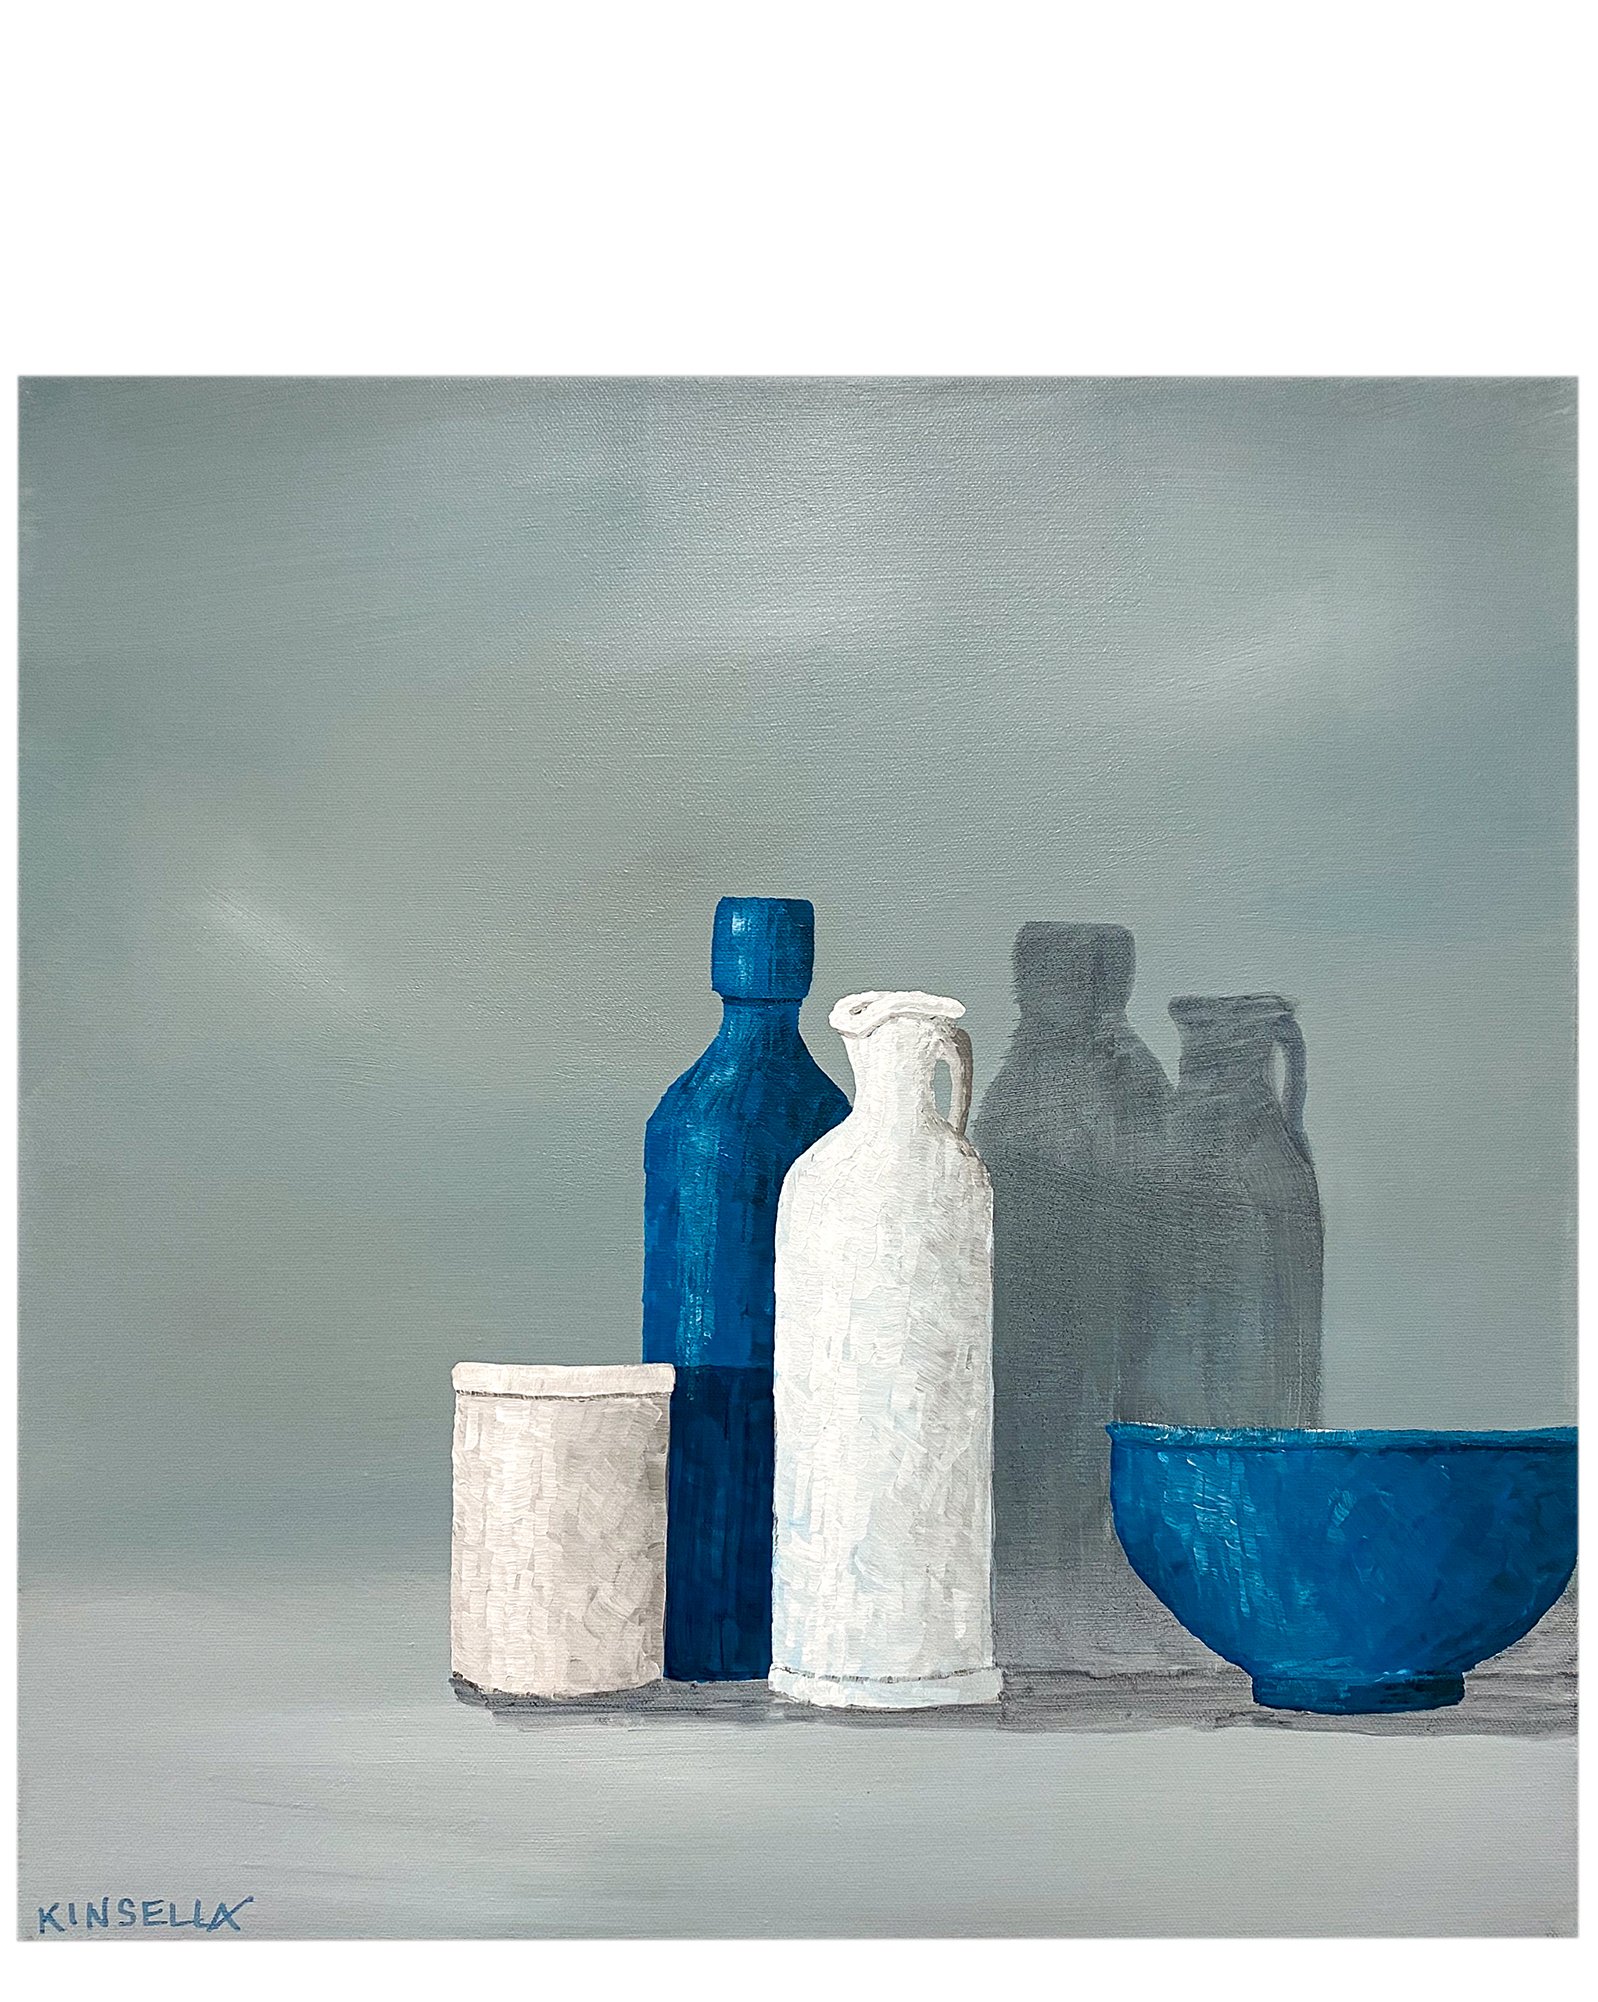 "Still Life with Blue Bottle"" by Susan Kinsella,"